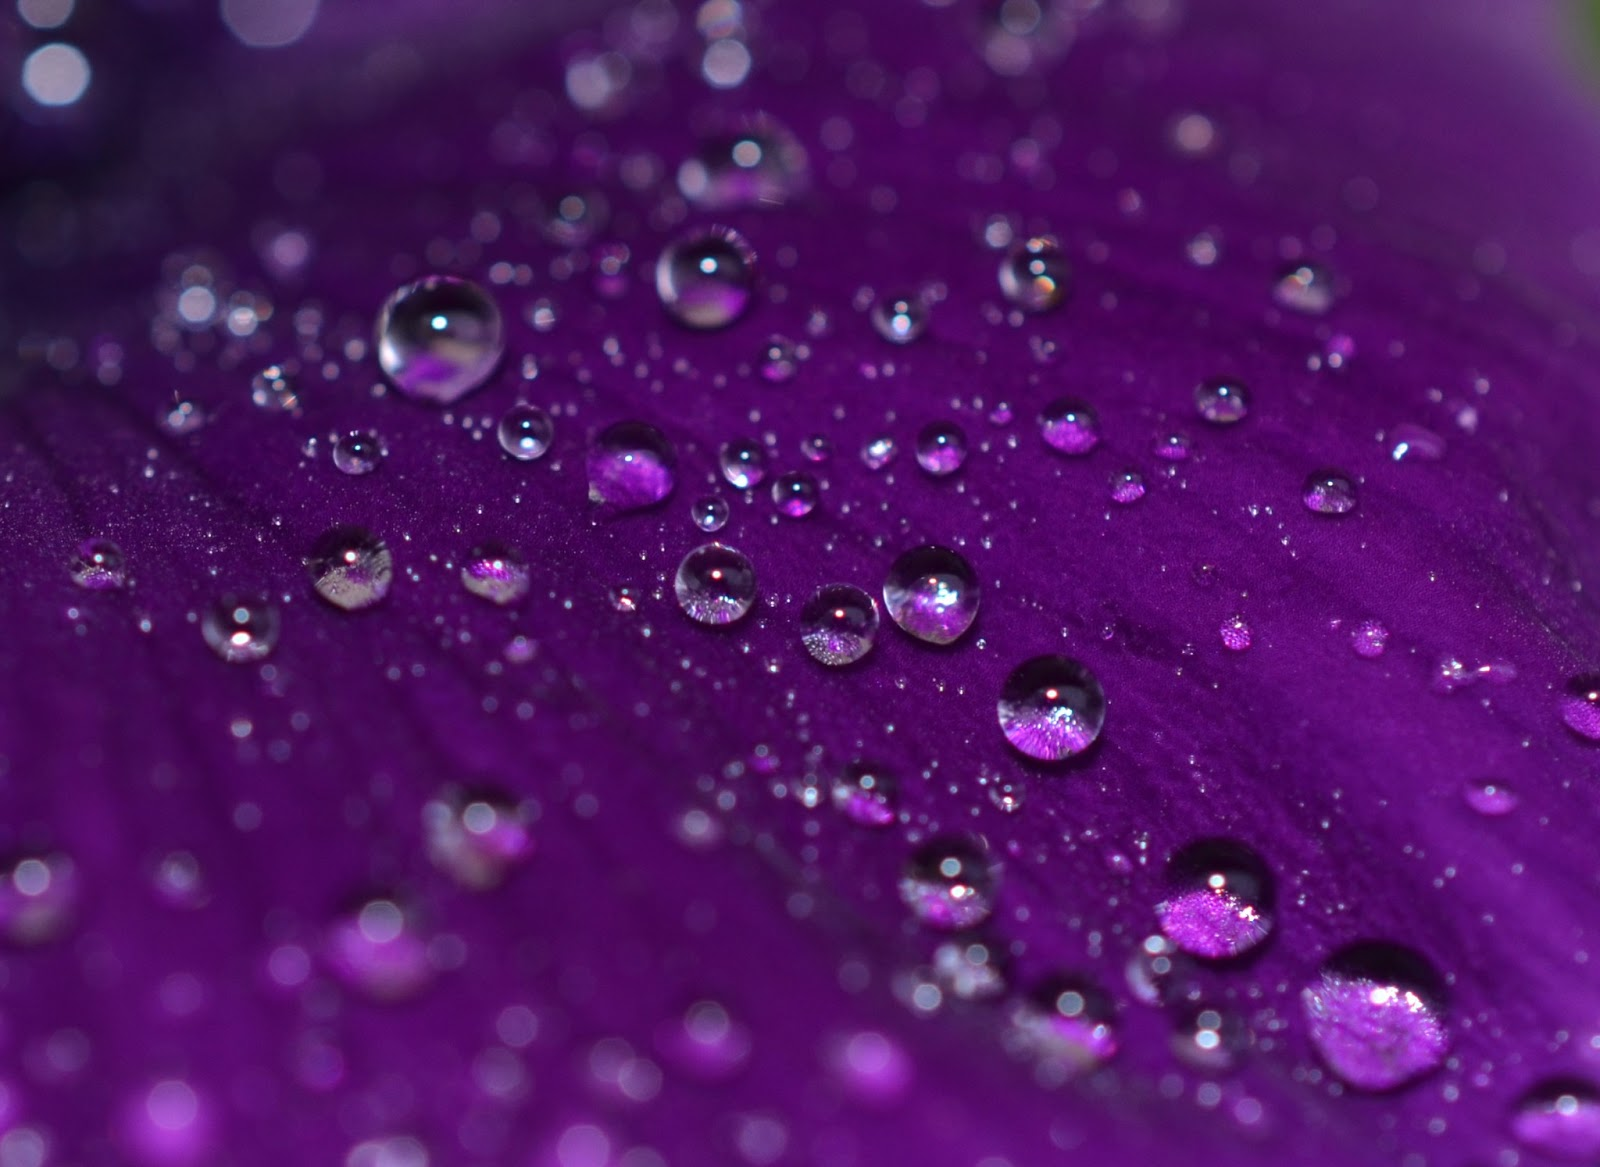 Purple Raindrops Images - Reverse Search